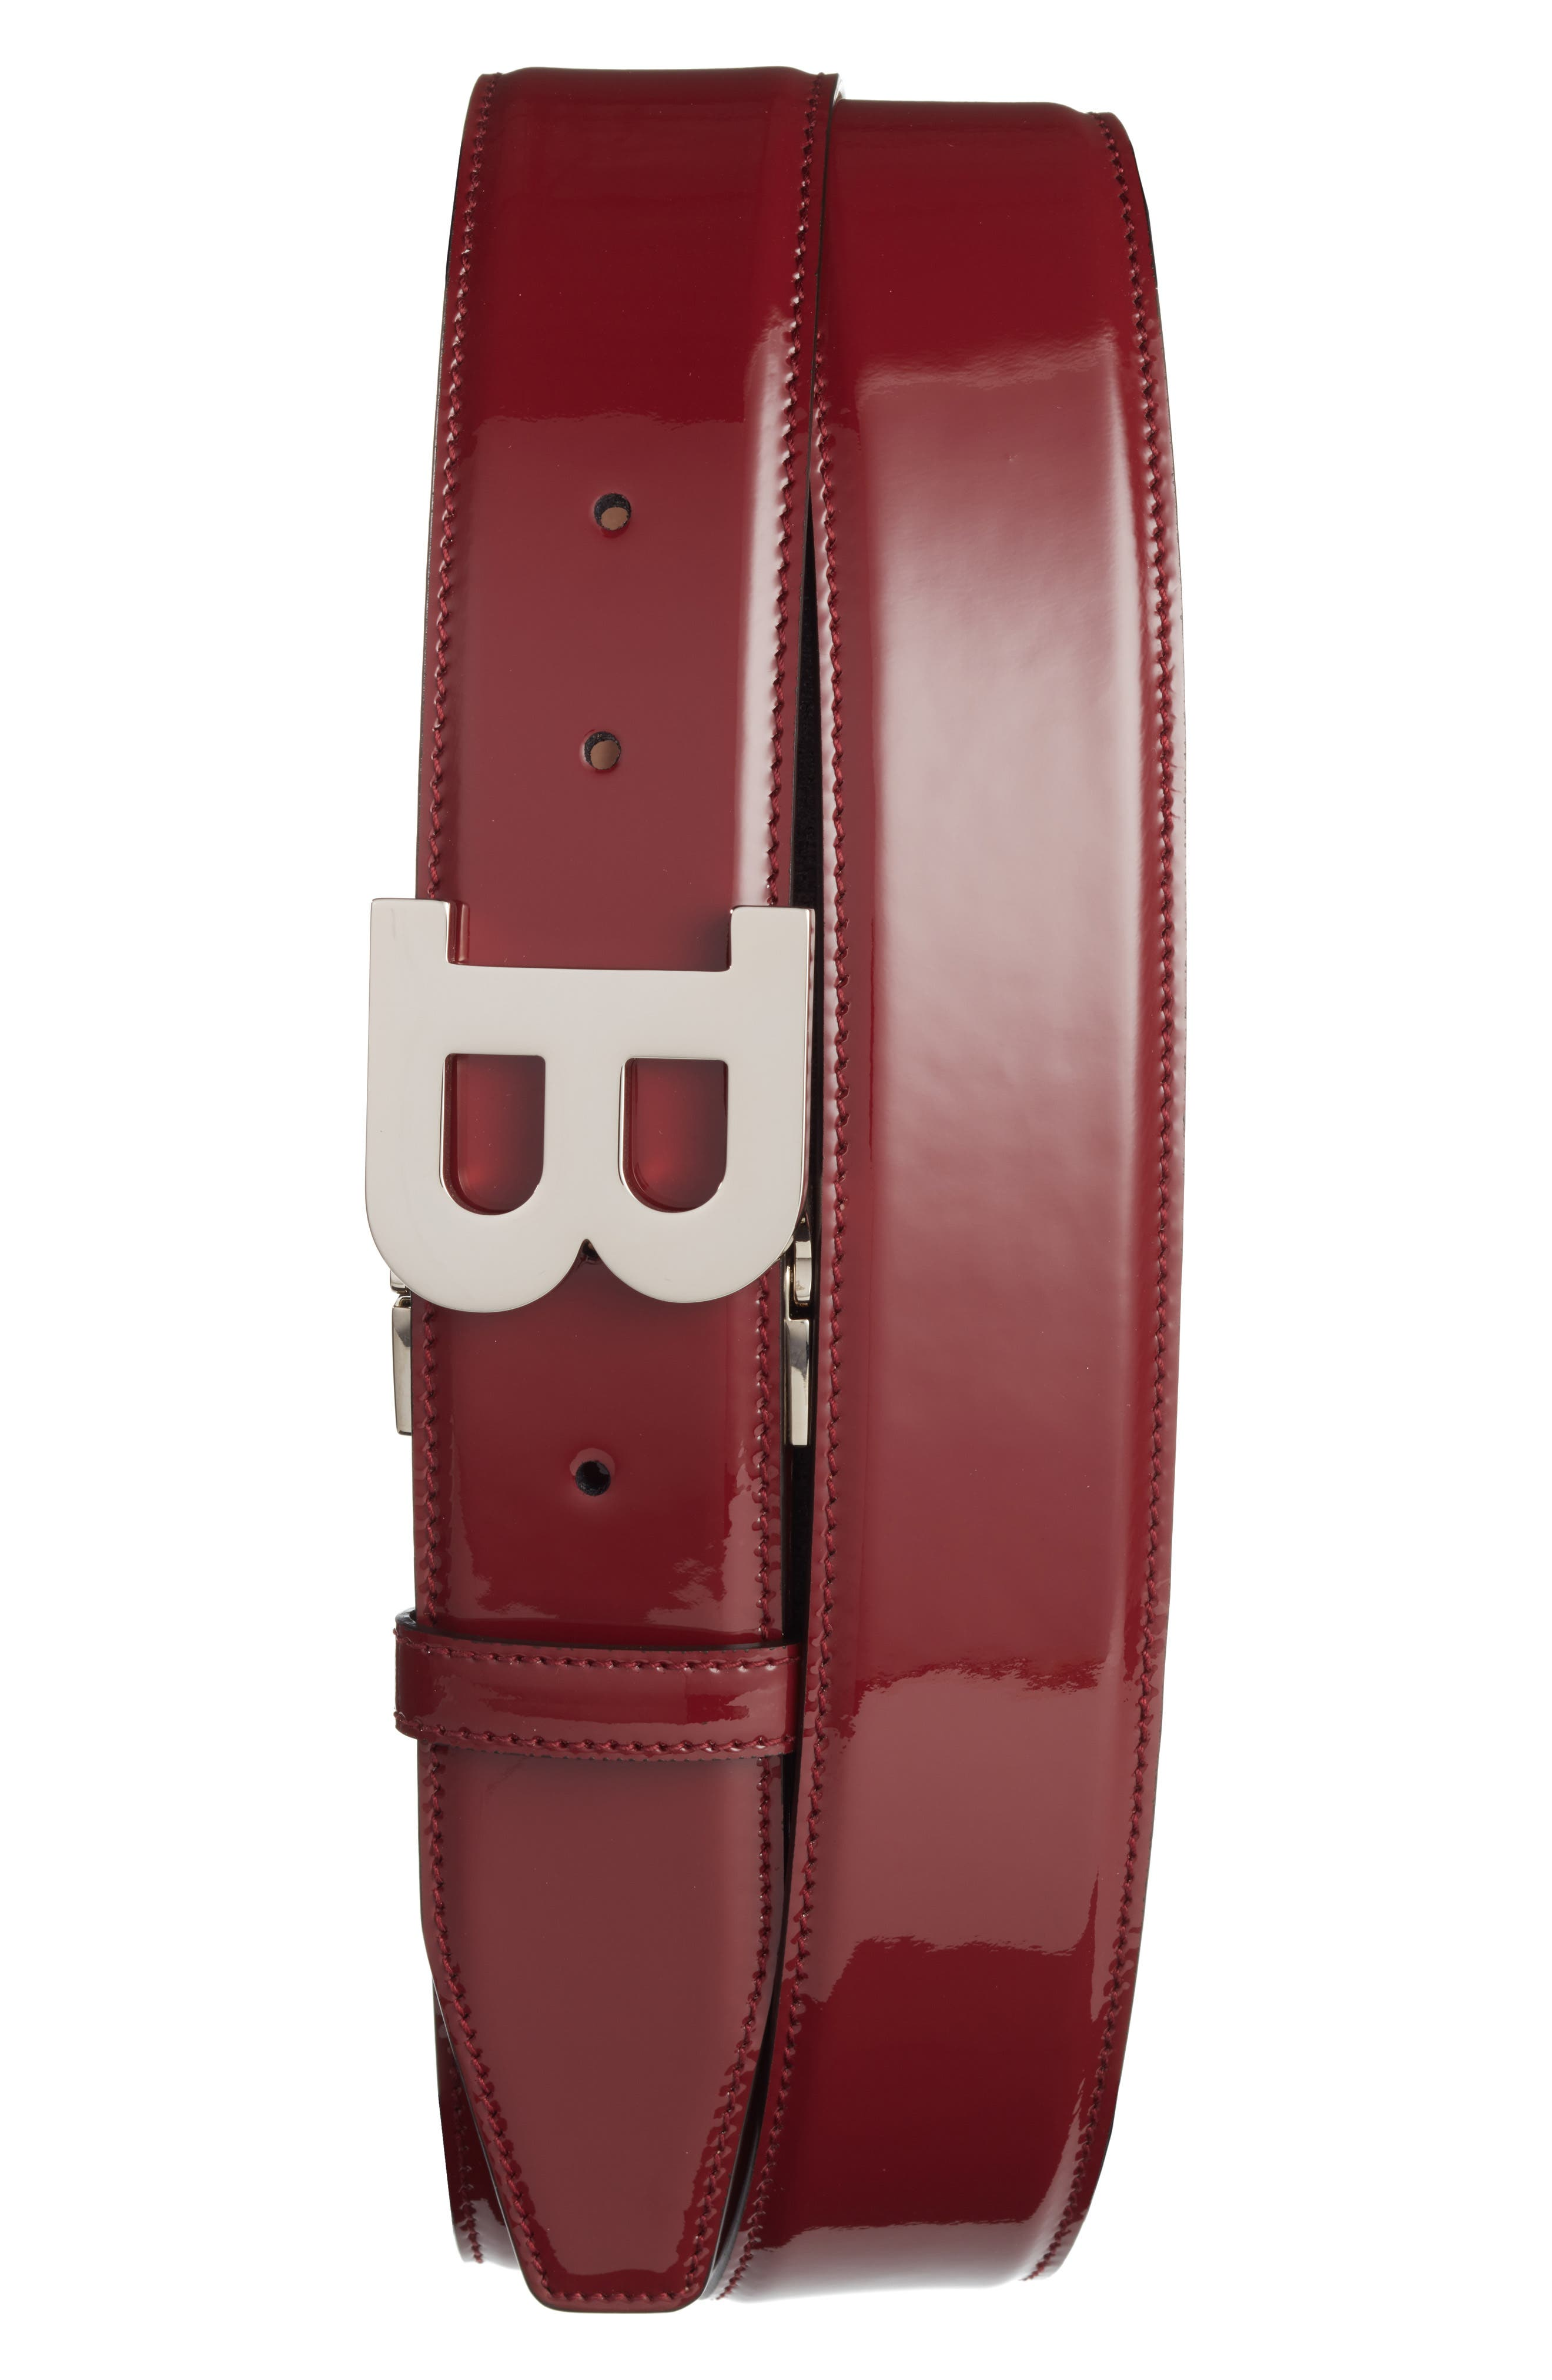 B Buckle Patent Leather Belt,                         Main,                         color, Dark Red